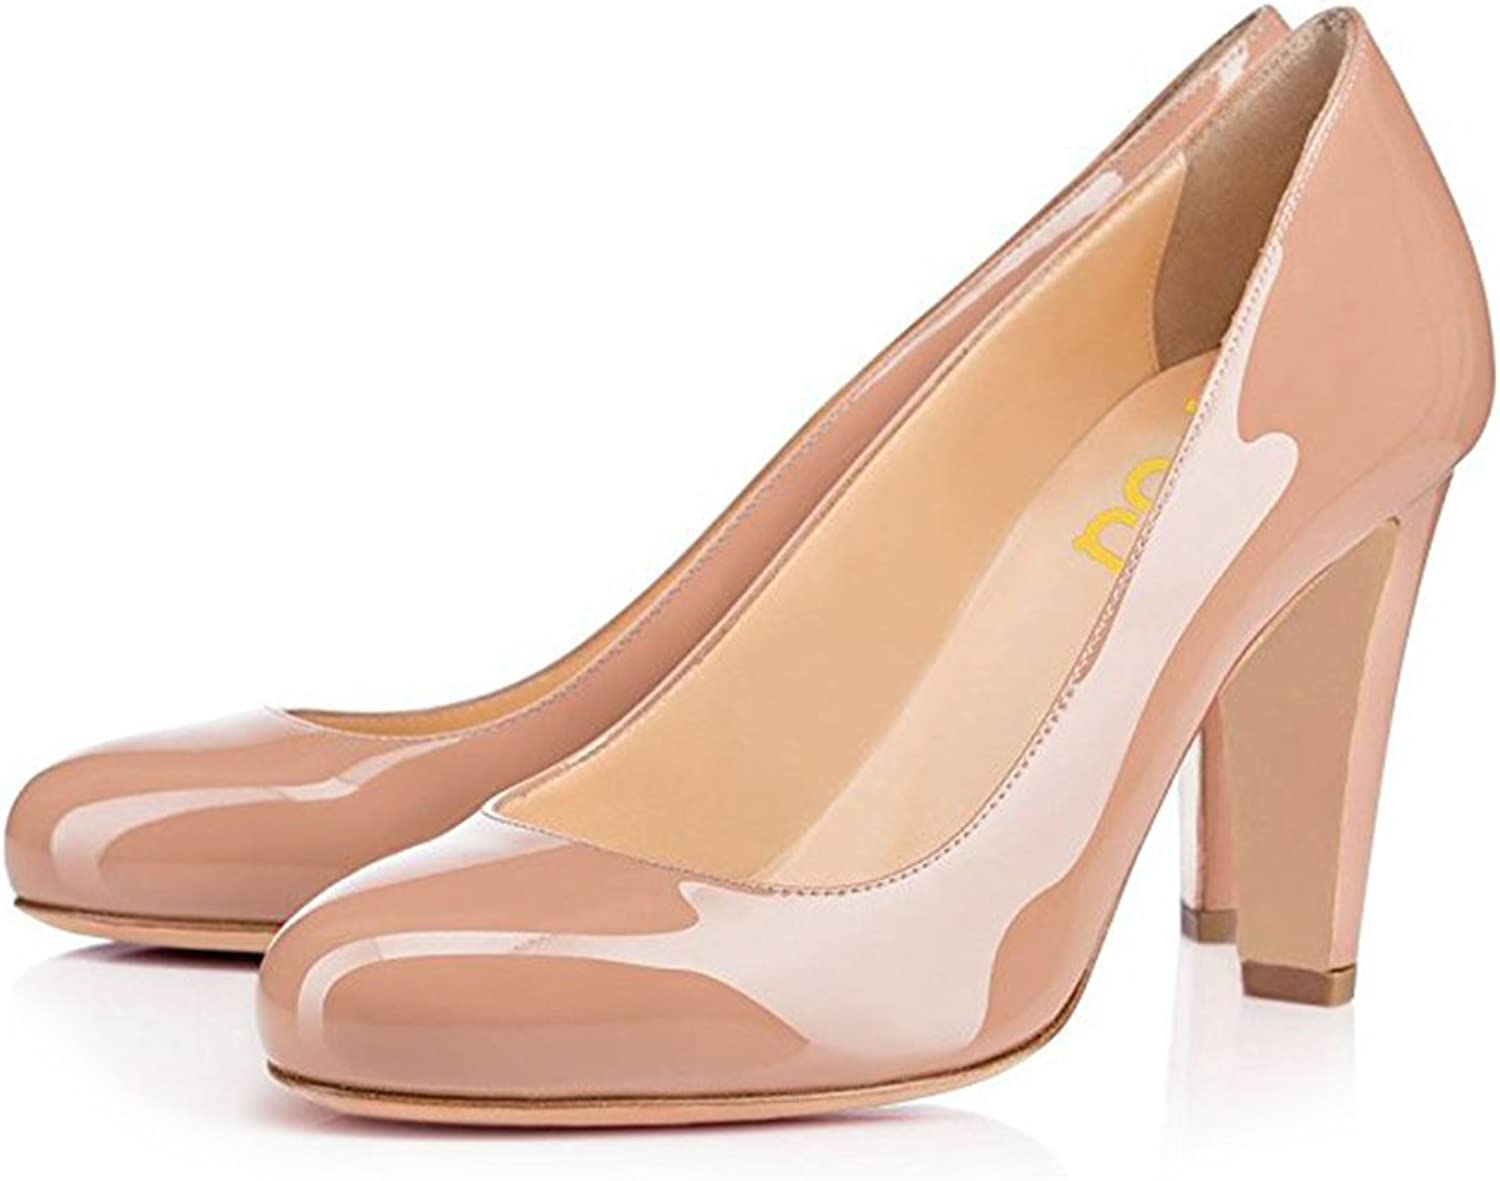 FSJ Fashion Women's Round Toe Pumps Chunky Heels Slip on Party shoes Patent Leather Size 4-15 US